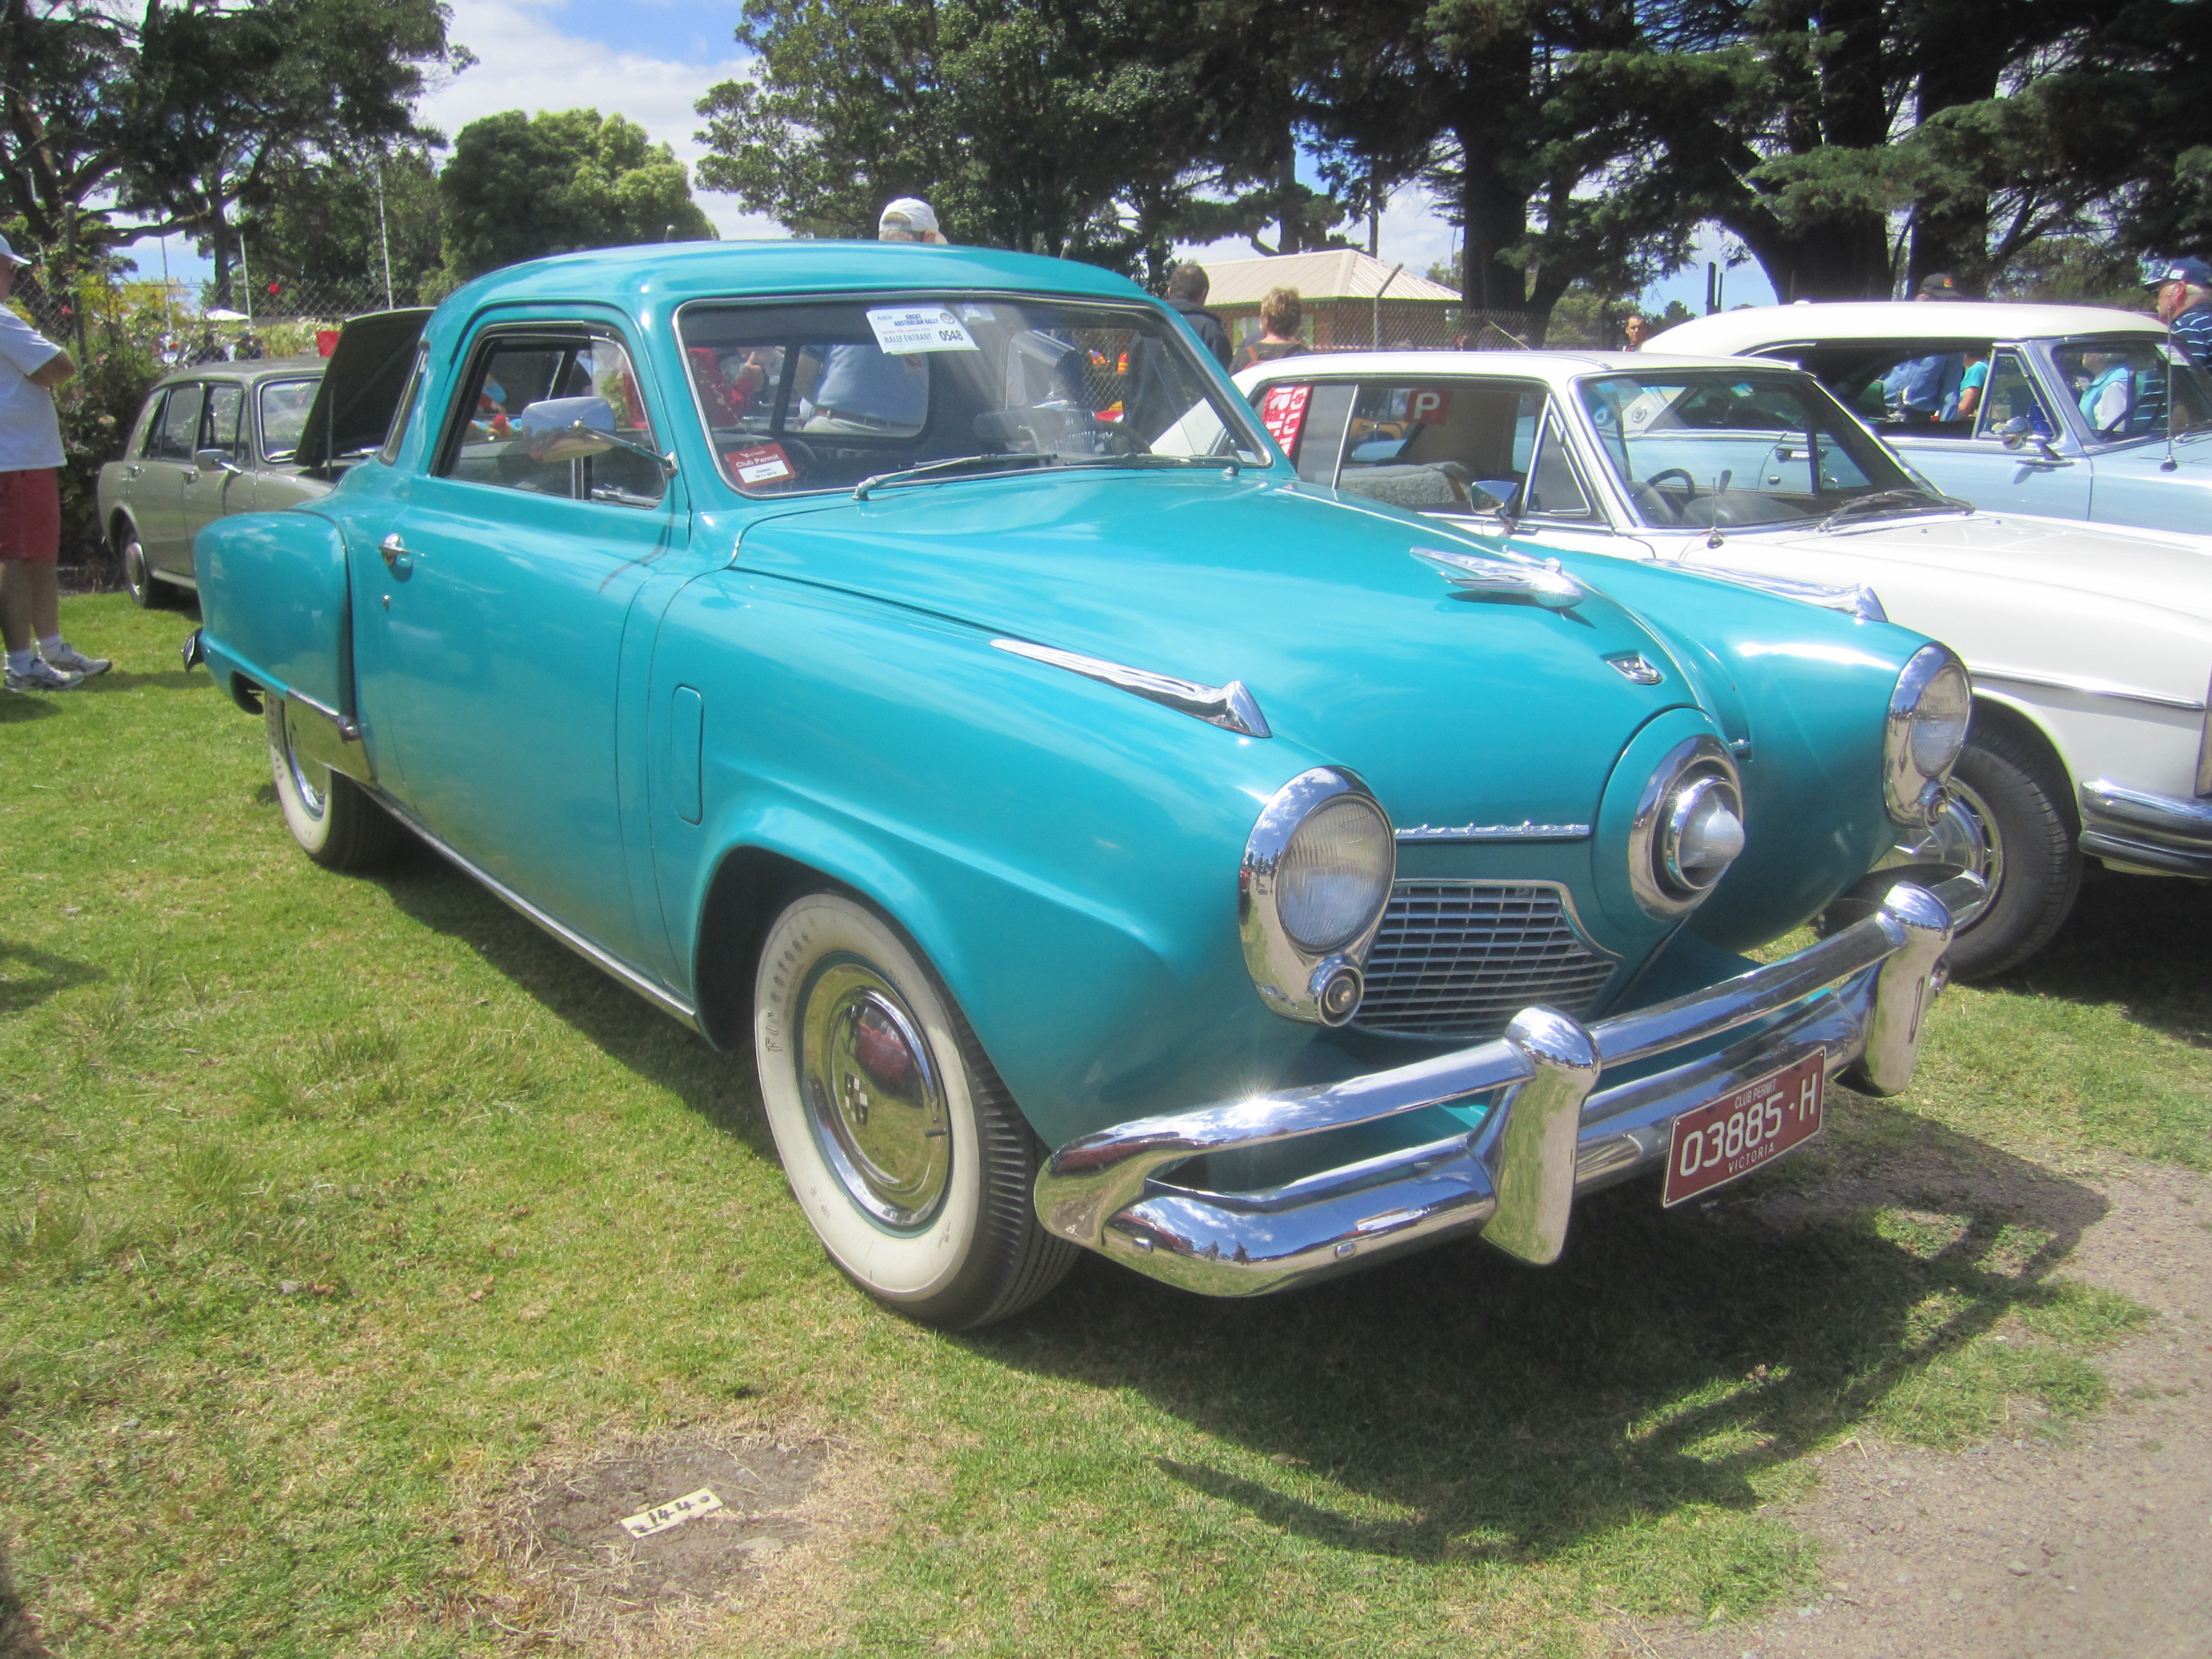 1951 studebaker land cruiser for sale autos post - Studebaker champion starlight coupe ...